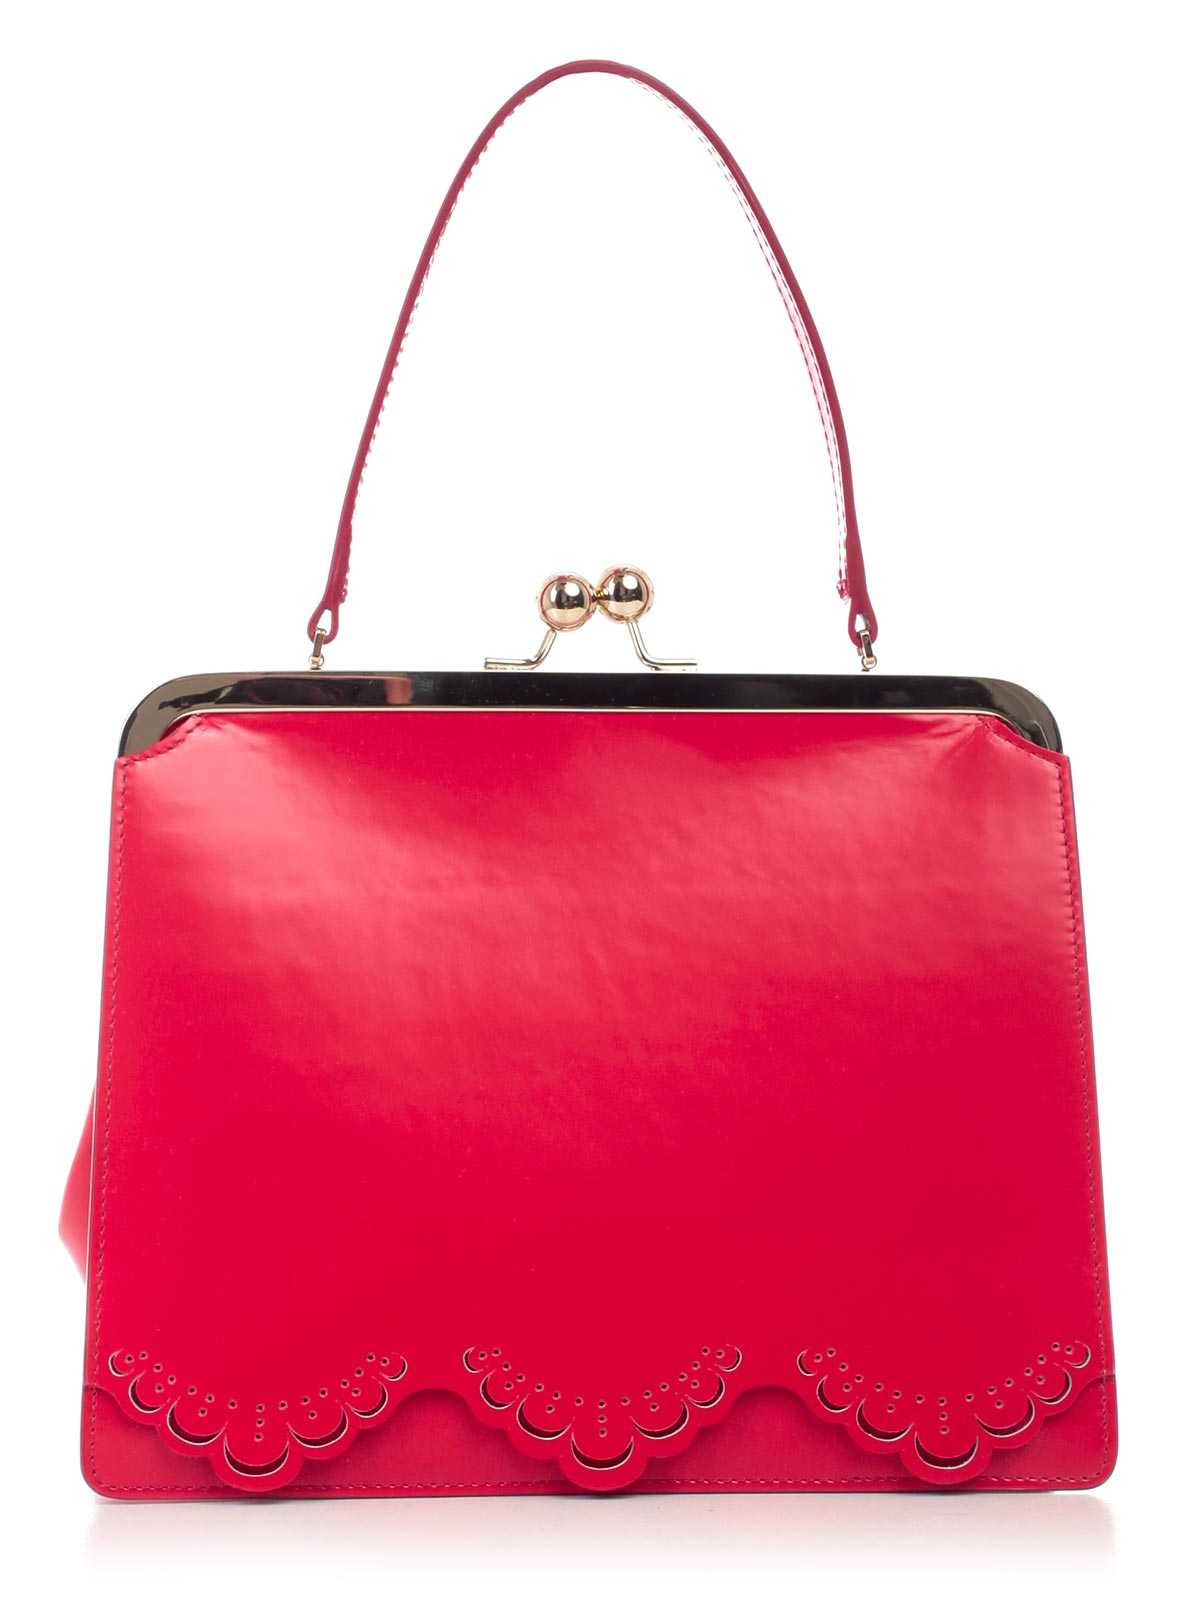 Picture of Simone Rocha Bags